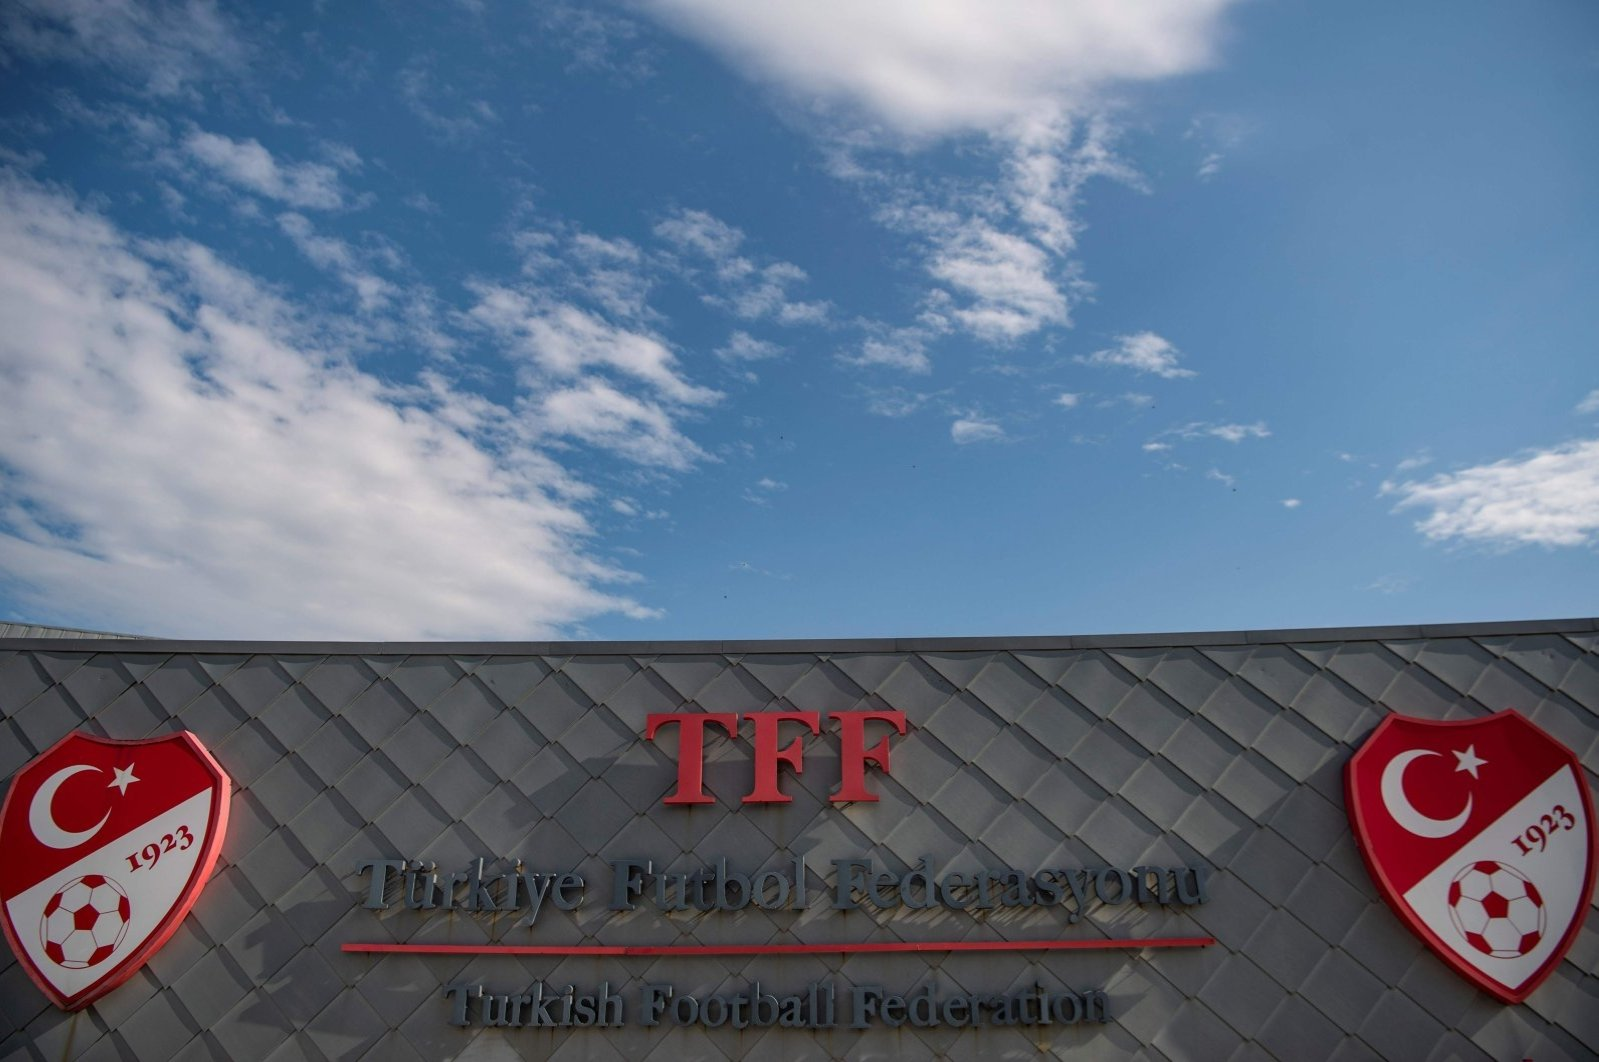 The logo of the Turkish Football Federation (TFF) at the entrance of the organization's headquarters in Istanbul, Turkey, May 6, 2020. (AFP Photo)